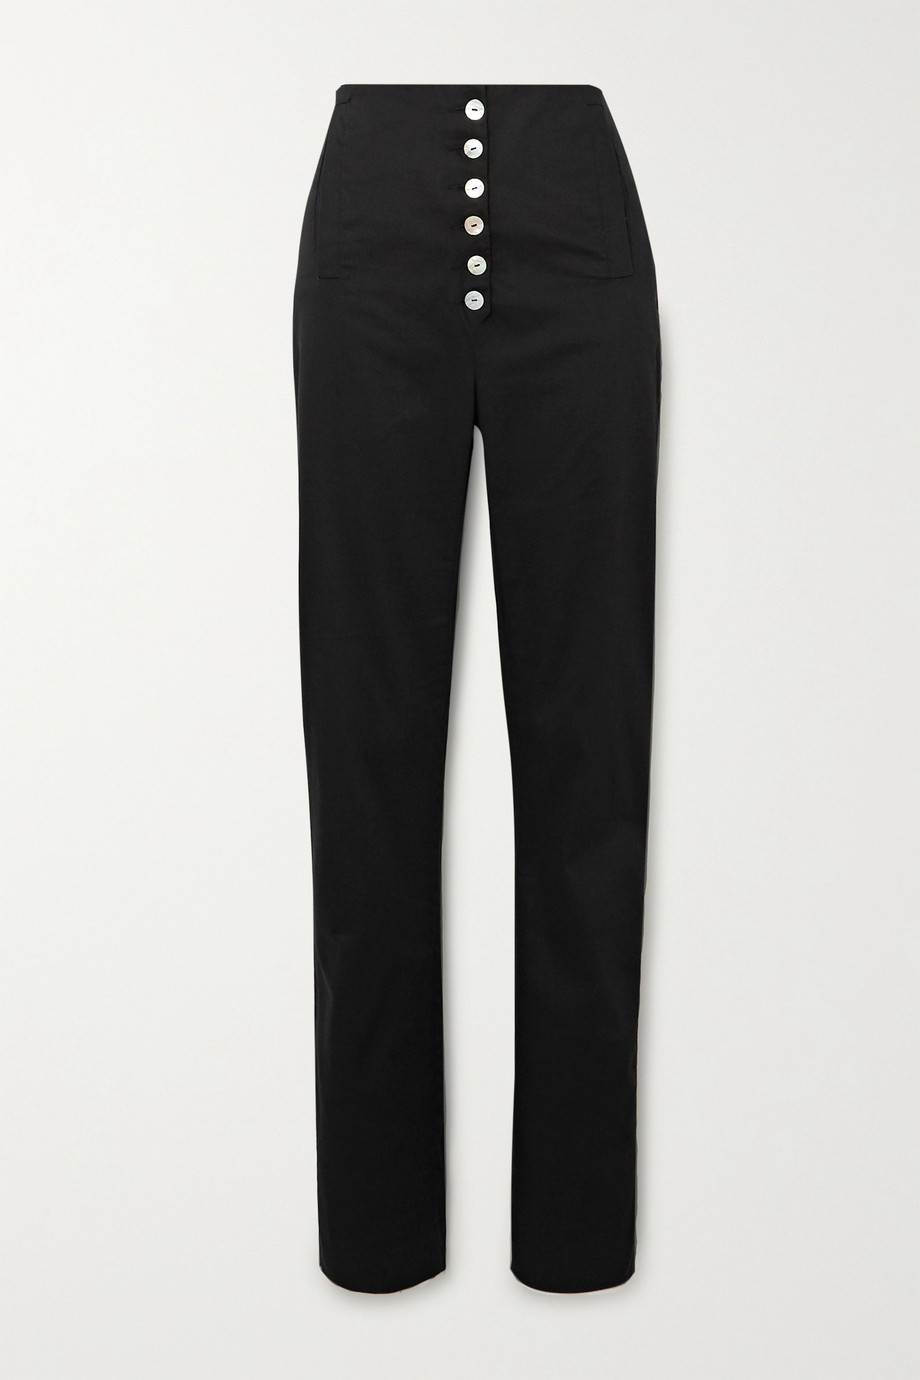 Àcheval Pampa Palo cotton-blend twill tapered pants